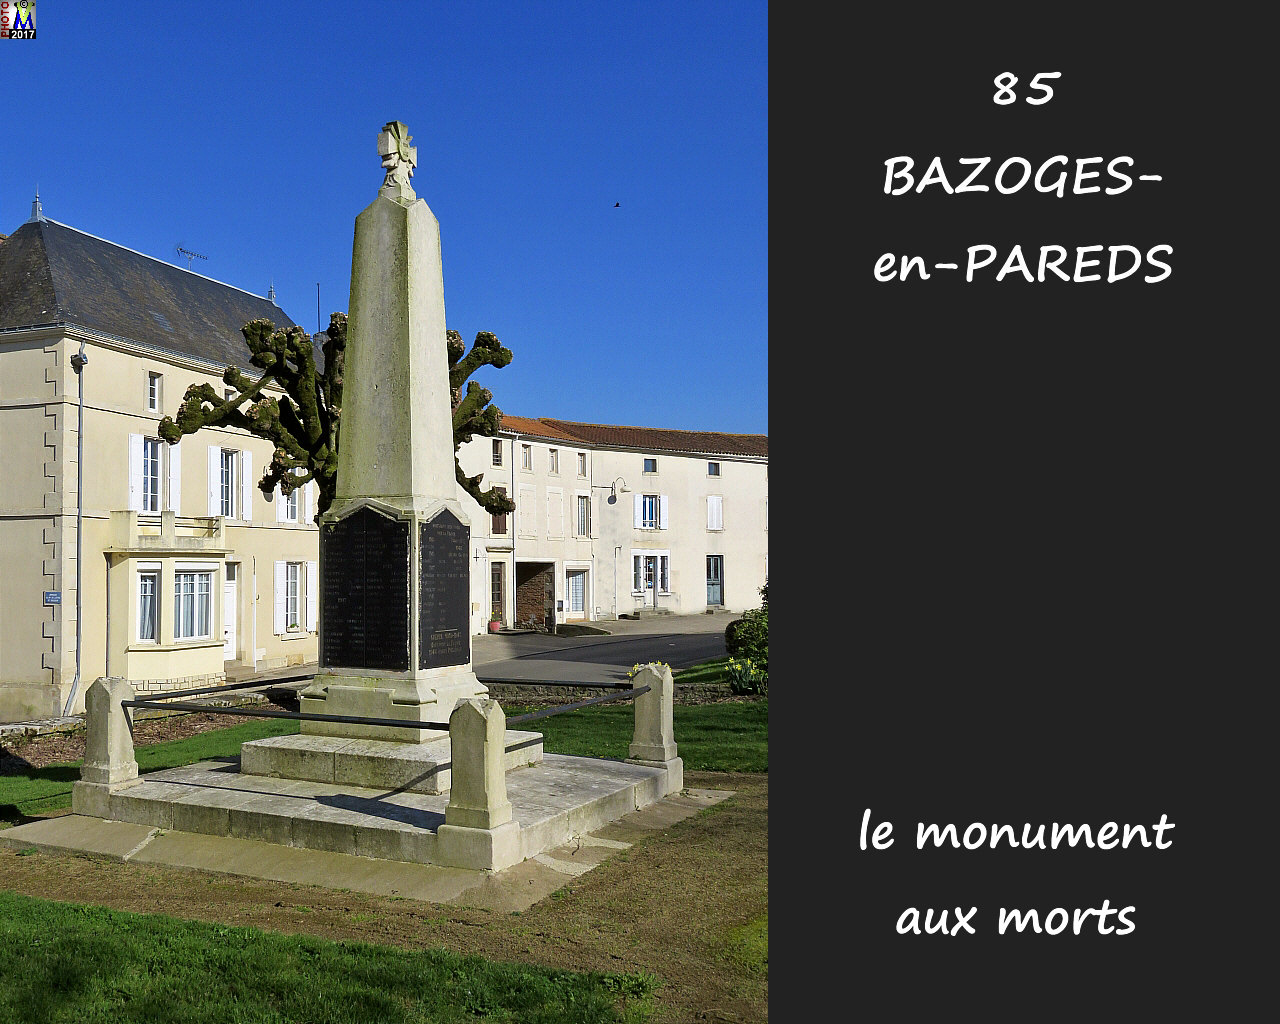 85BAZOGES-PAREDS_morts_1000.jpg